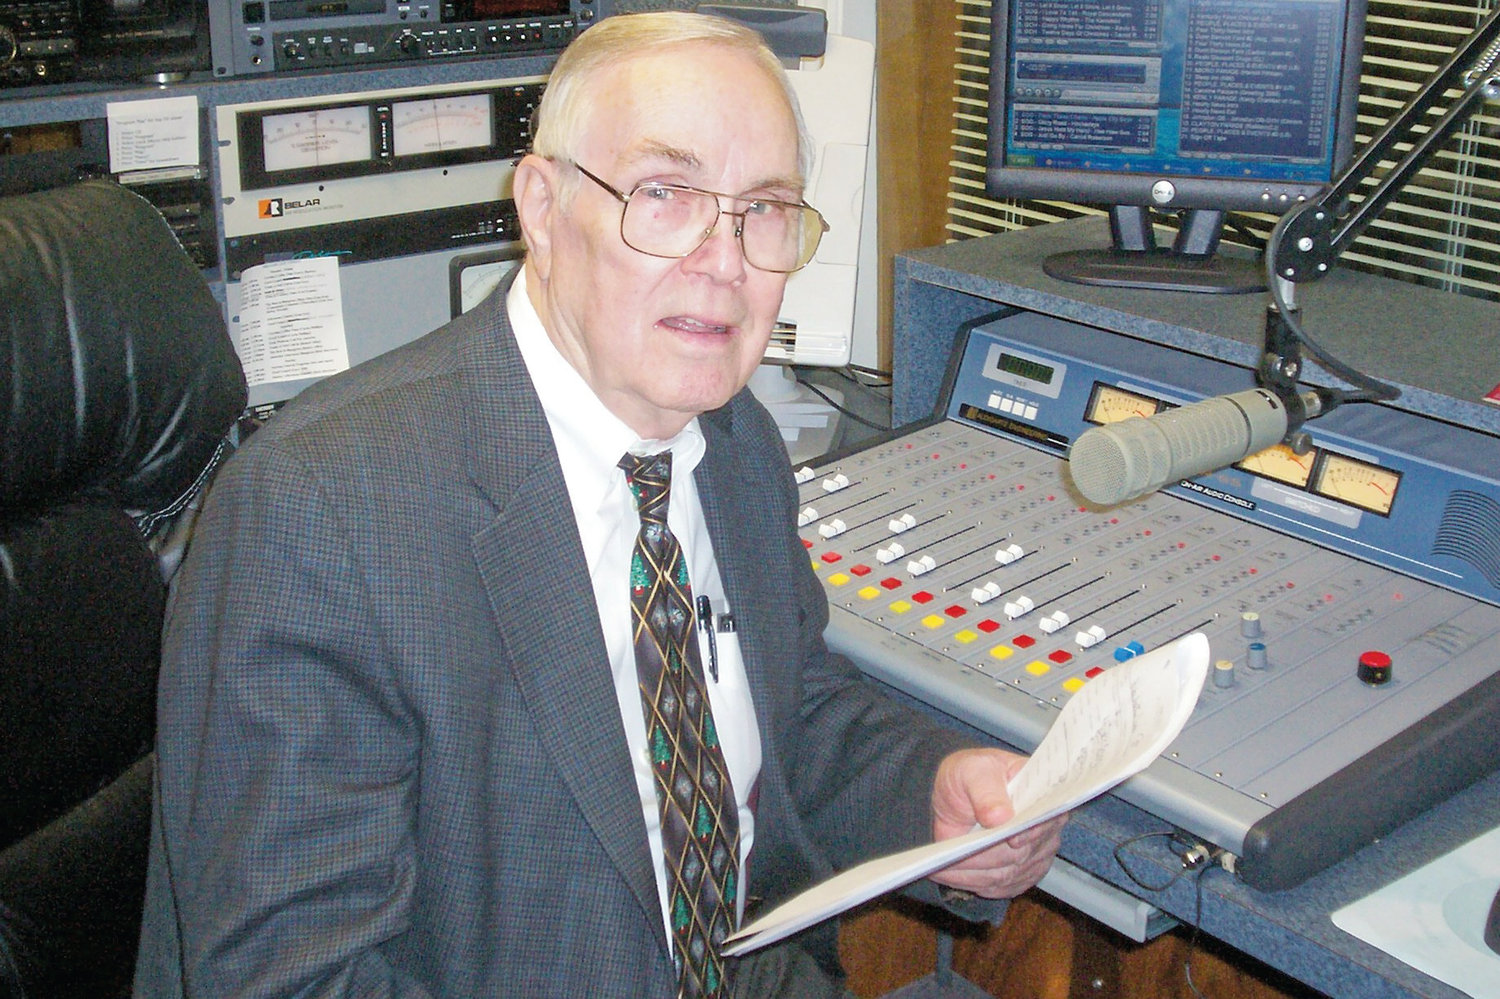 WTSB owner and broadcasting fixture Carl Lamm has announced his retirement. On March 29 he will close out a 72-year career that began in Rocky Mount. His retirement will also mark the end of the longest tenure of a broadcaster in the United States.